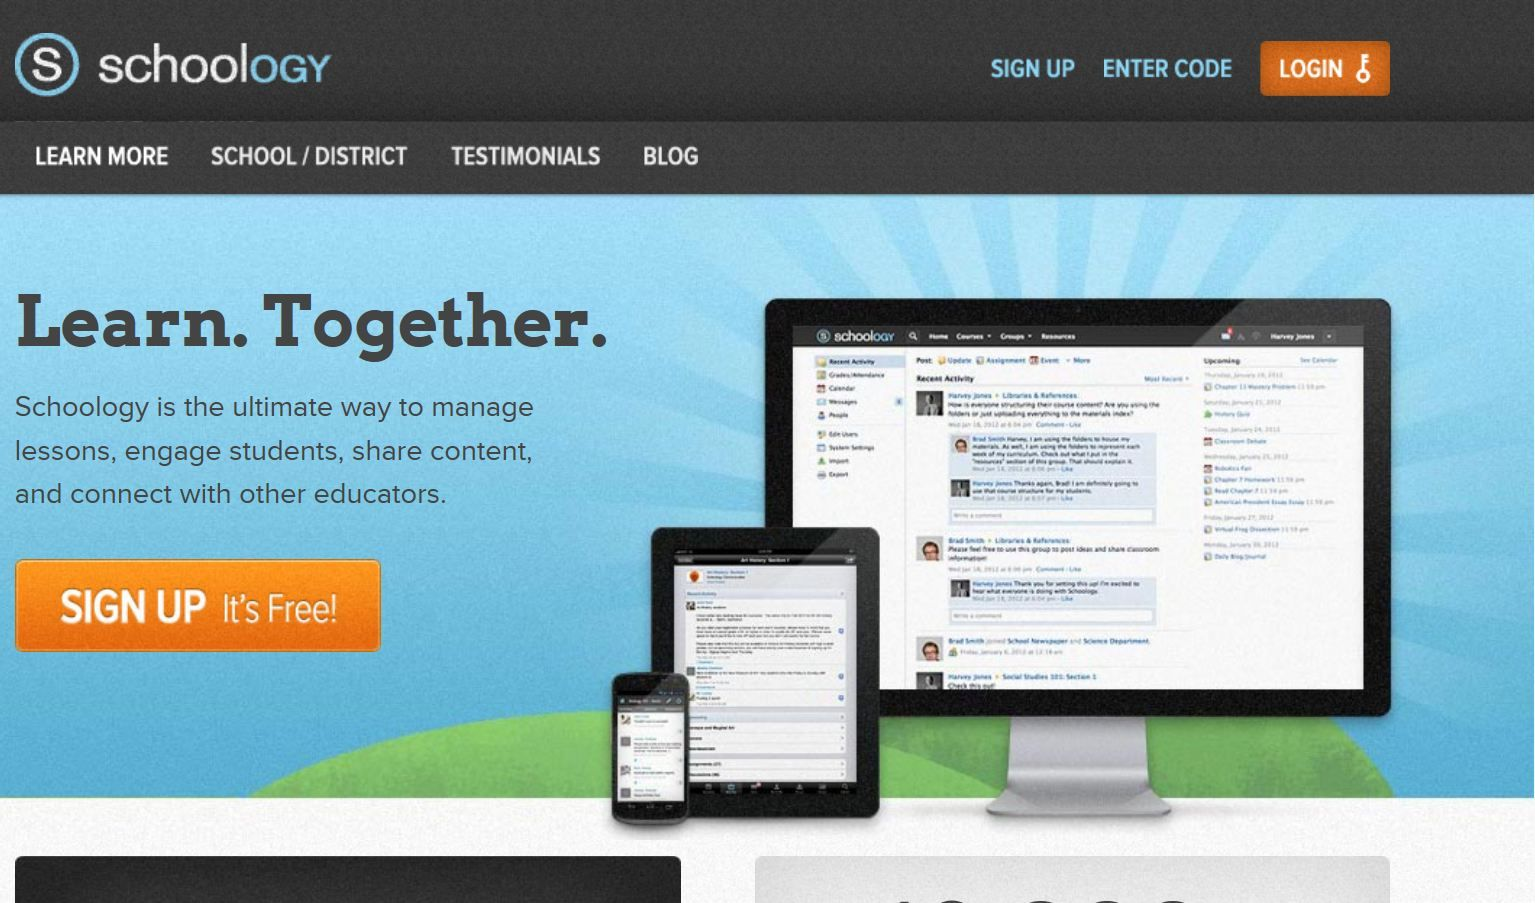 Schoology The ultimate way to manager lessons, engage